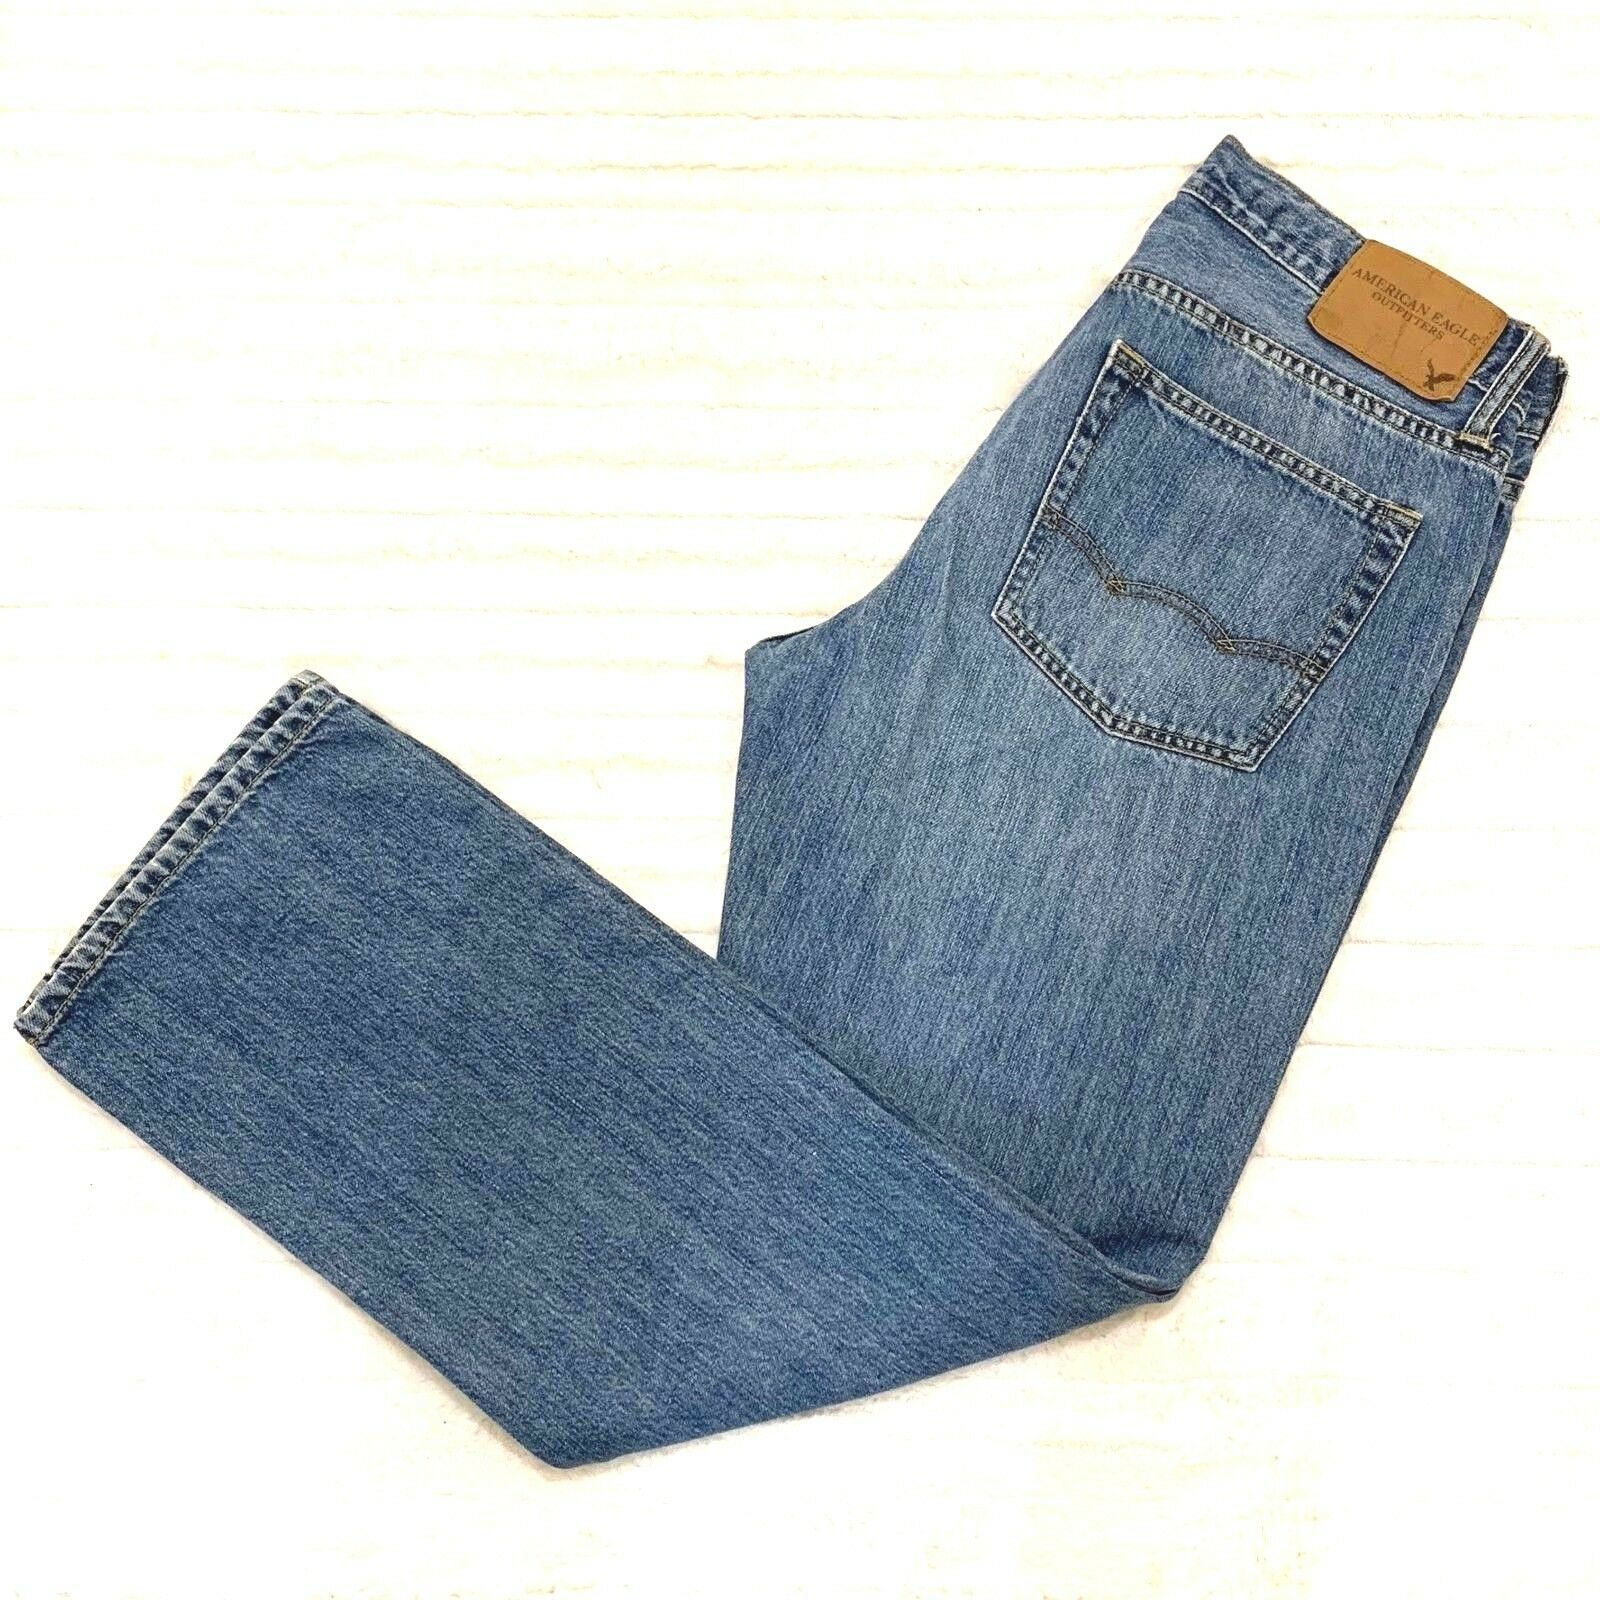 86b7814a American Eagle Mens Jeans Size 30 x 30 Original Straight Cotton Denim -  $21.84